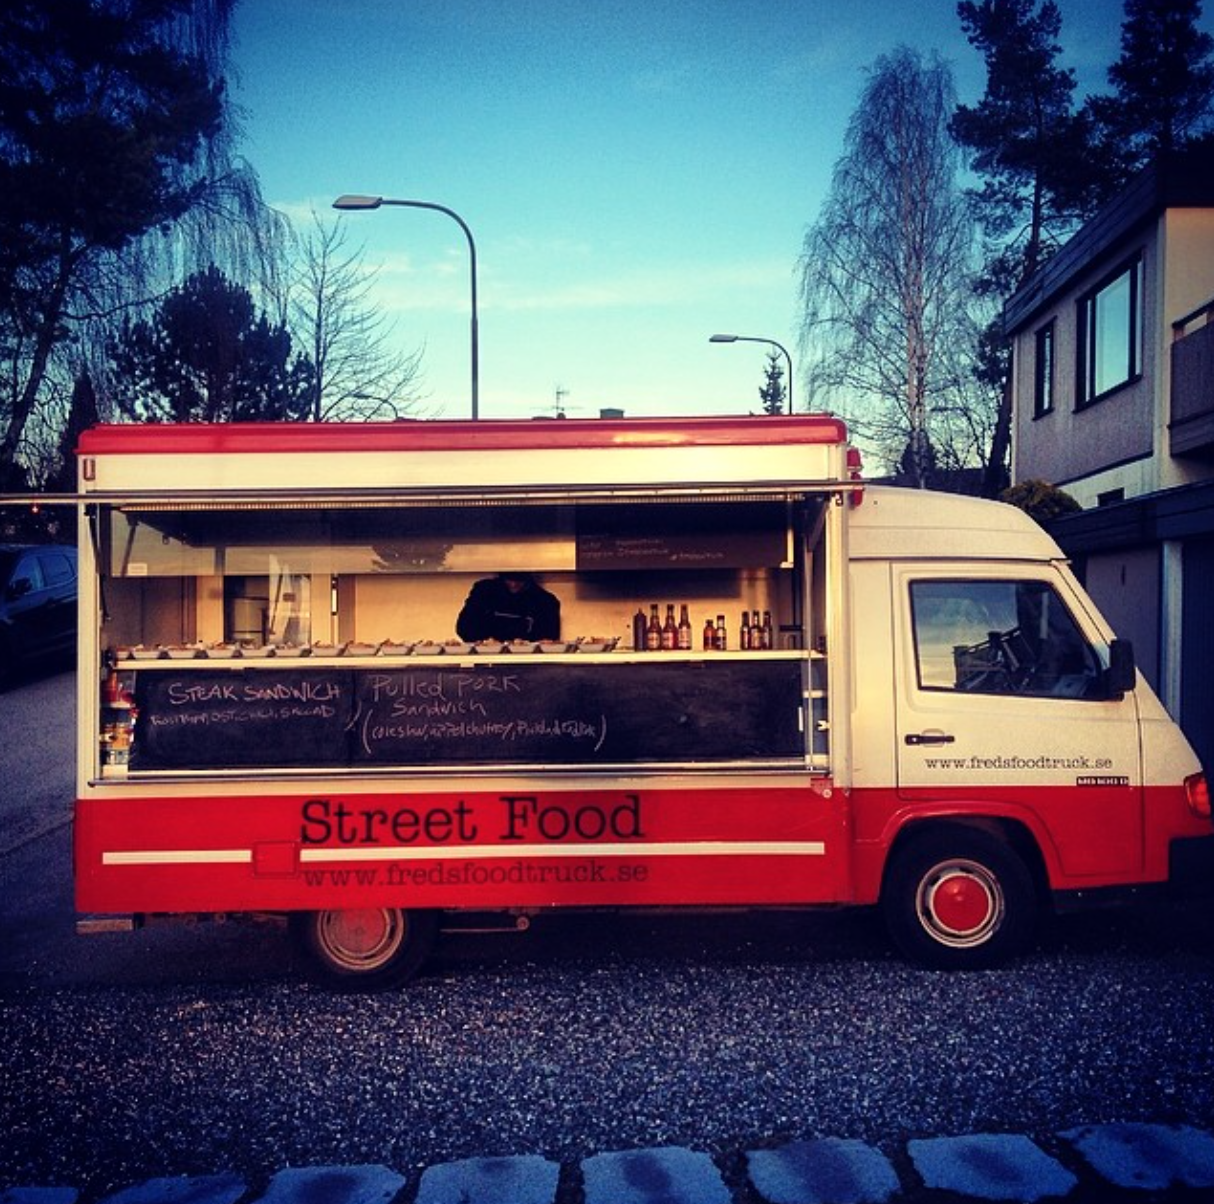 freds foodtruck